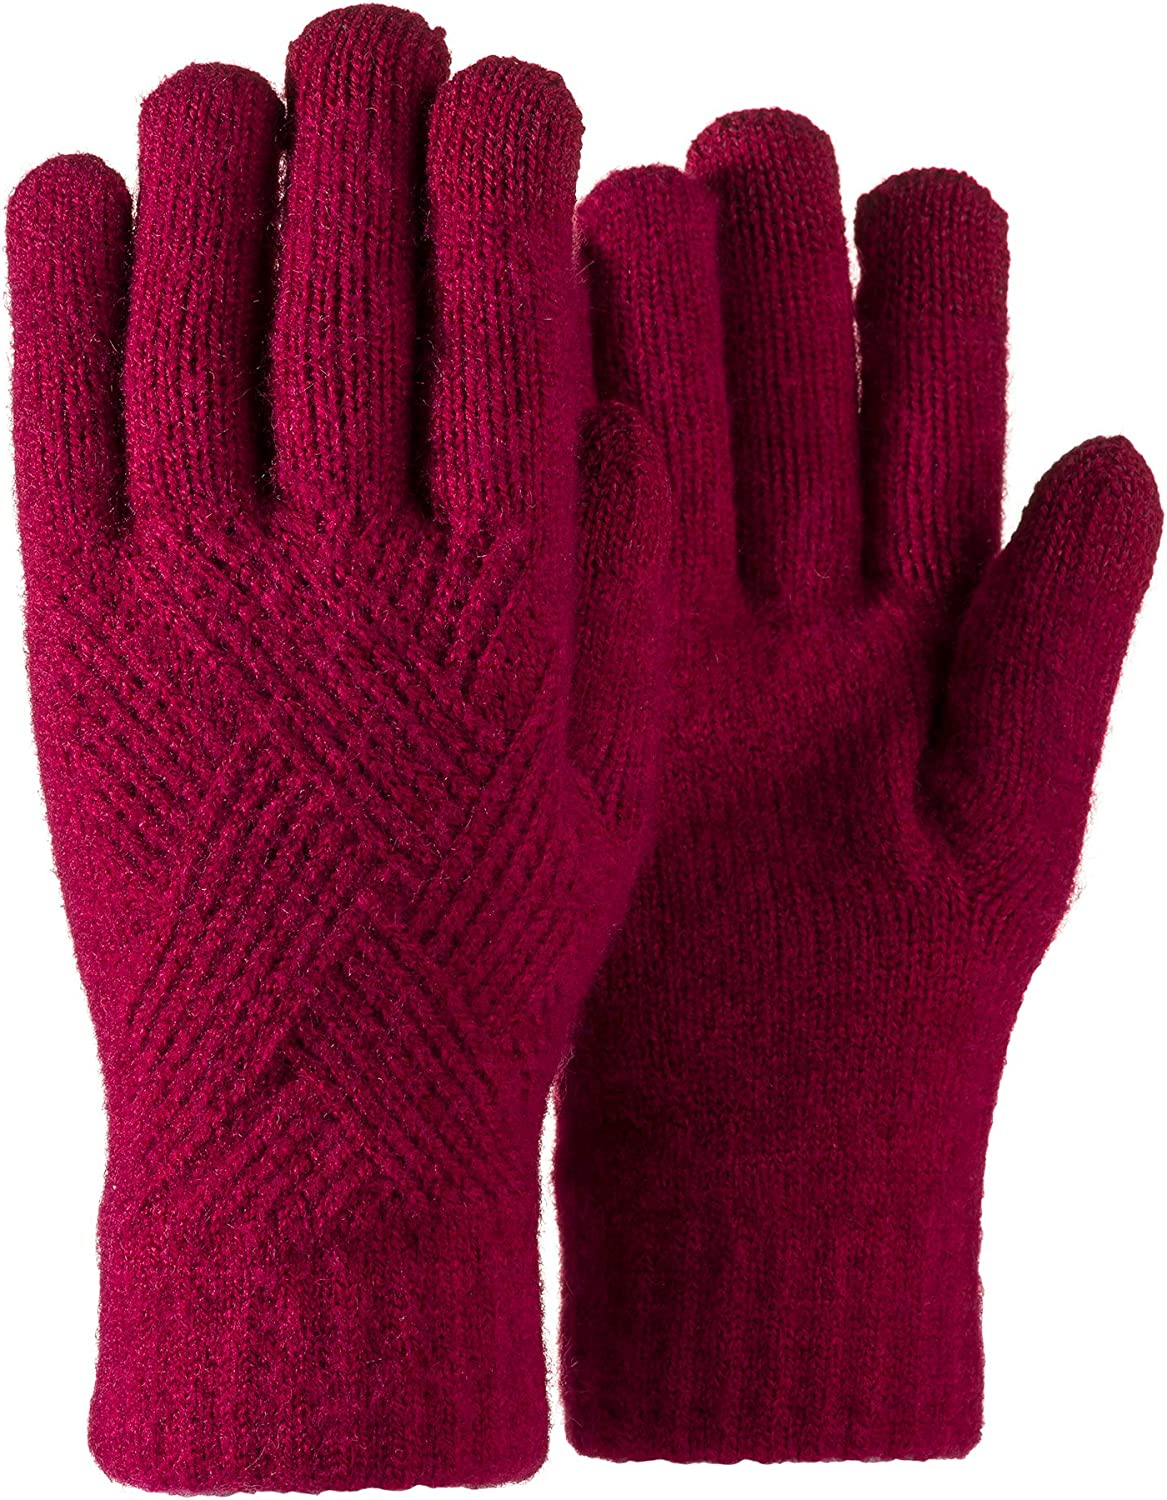 Women Gloves Winter Knit Touchscreen Thermal Soft Lined Texting Elastic Glove